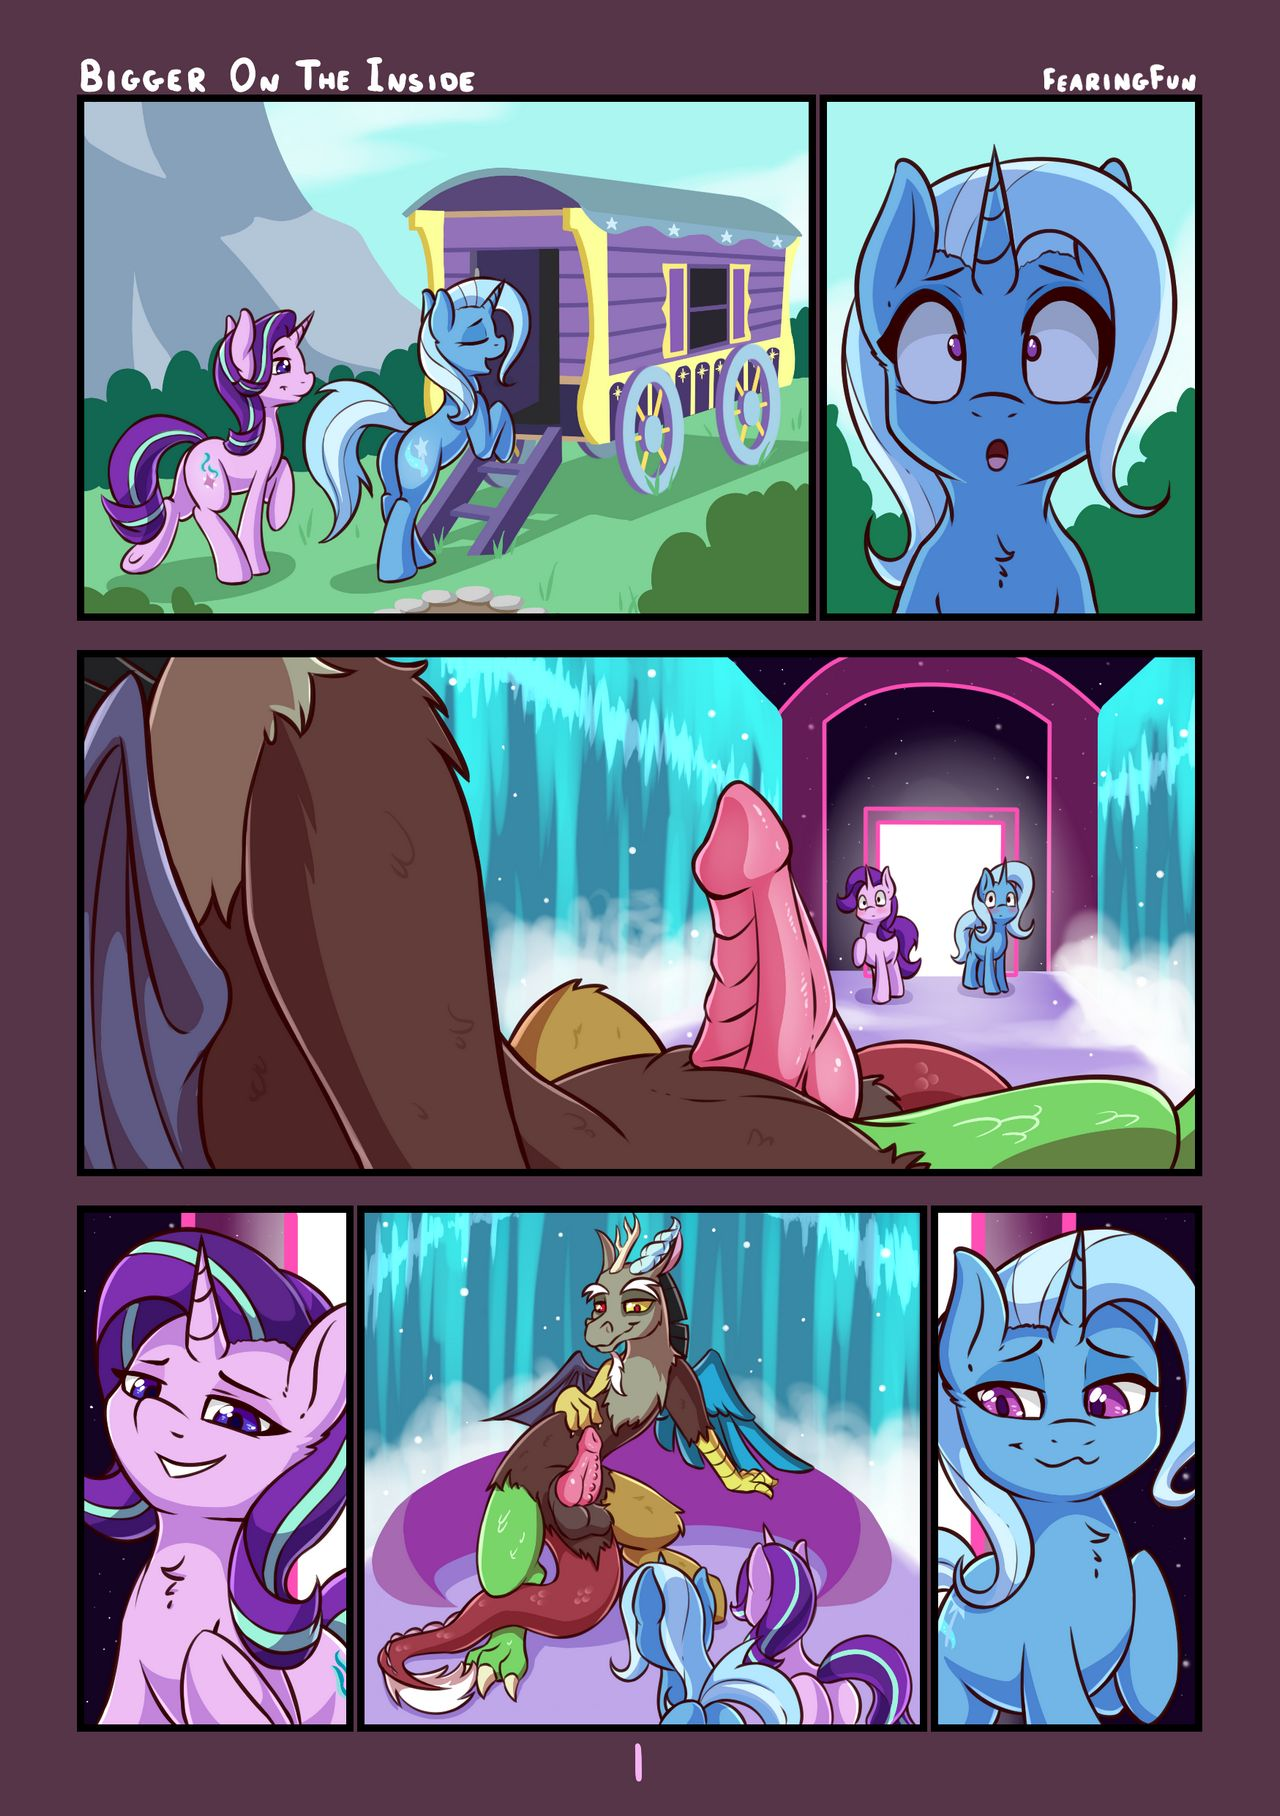 [Fearingfun] Bigger On the Inside (My Little Pony_Frienship is Magic)